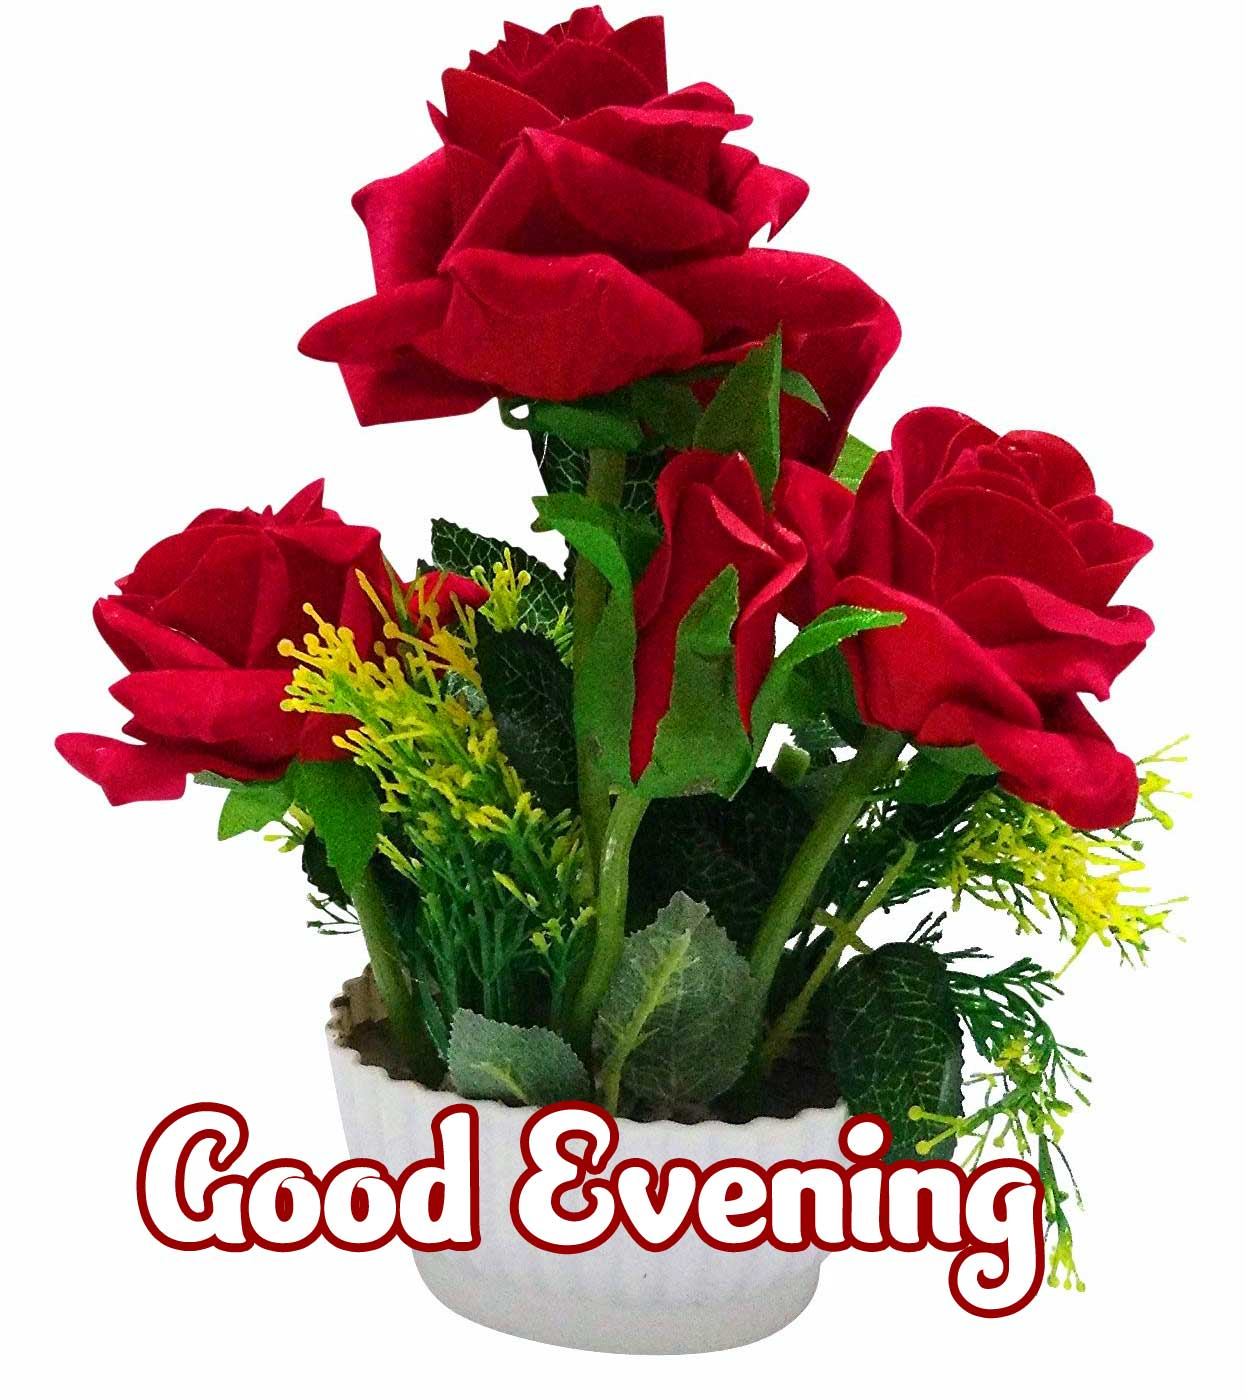 Flower Good Evening Wishes Images pics Download